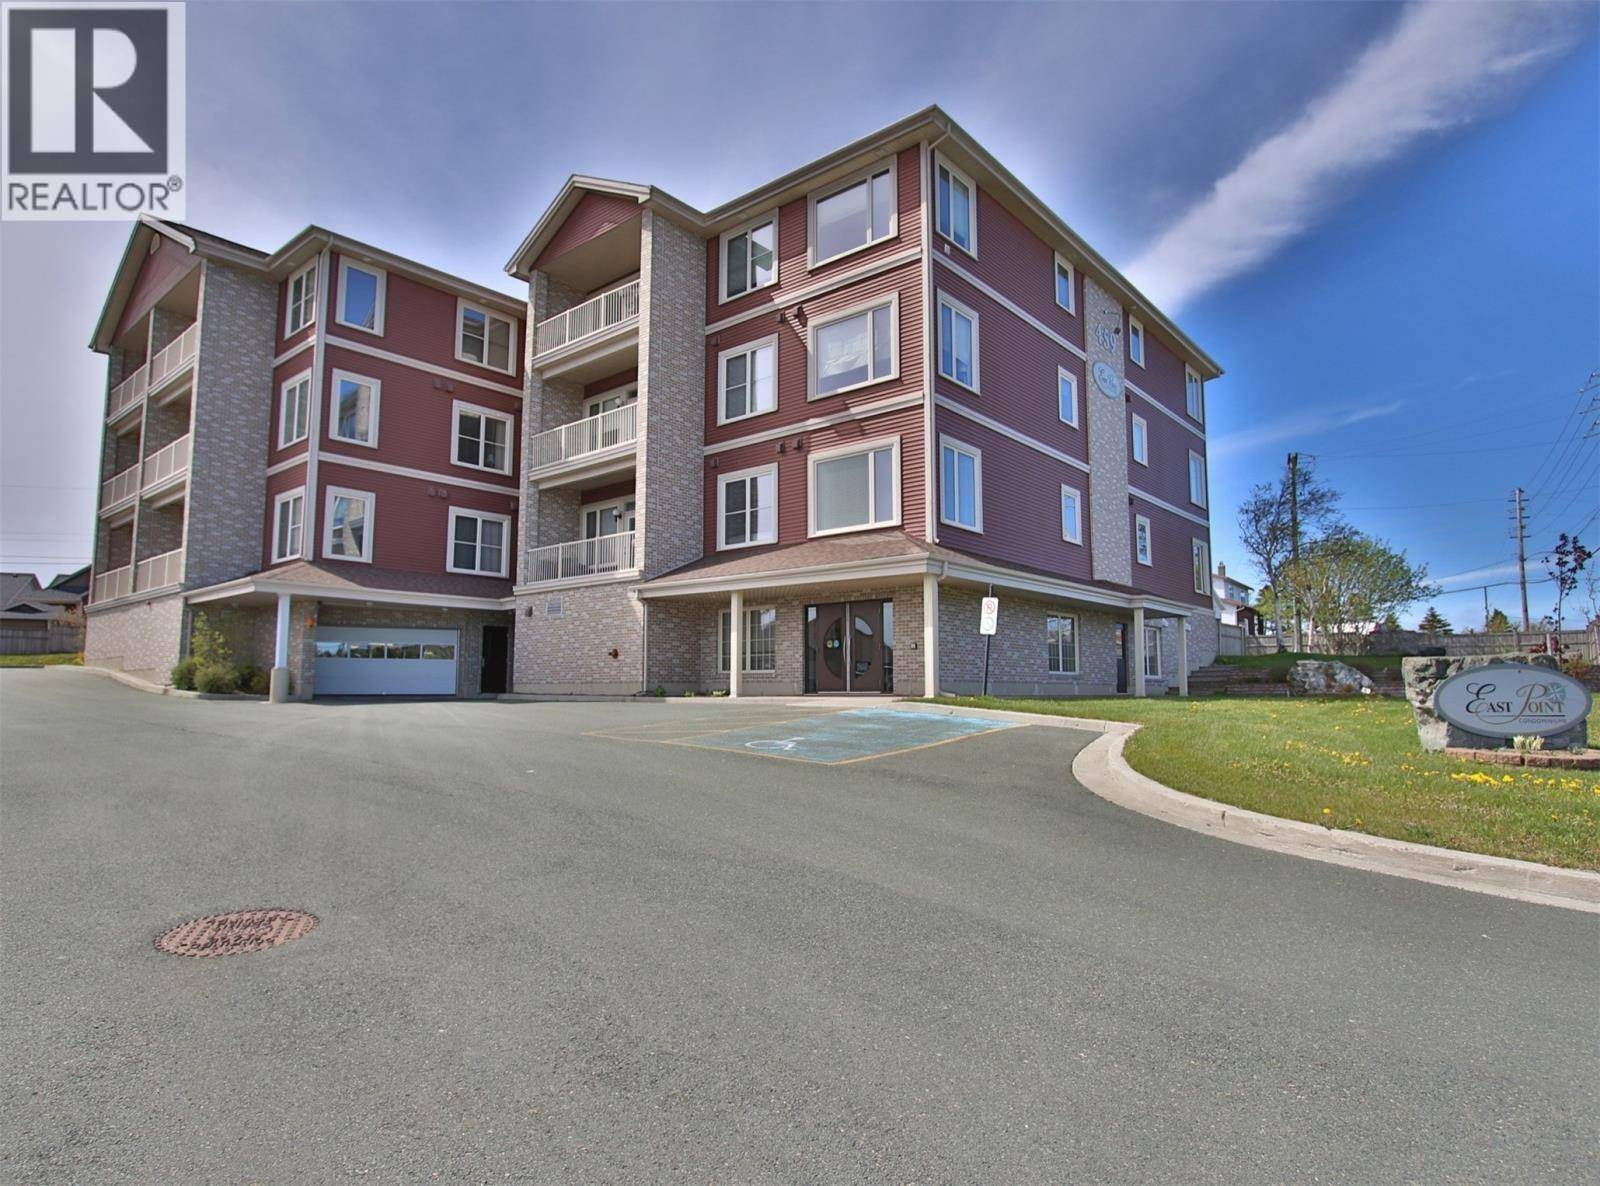 House for sale at 459 Logy Bay Rd Unit 105 St. John's Newfoundland - MLS: 1211556